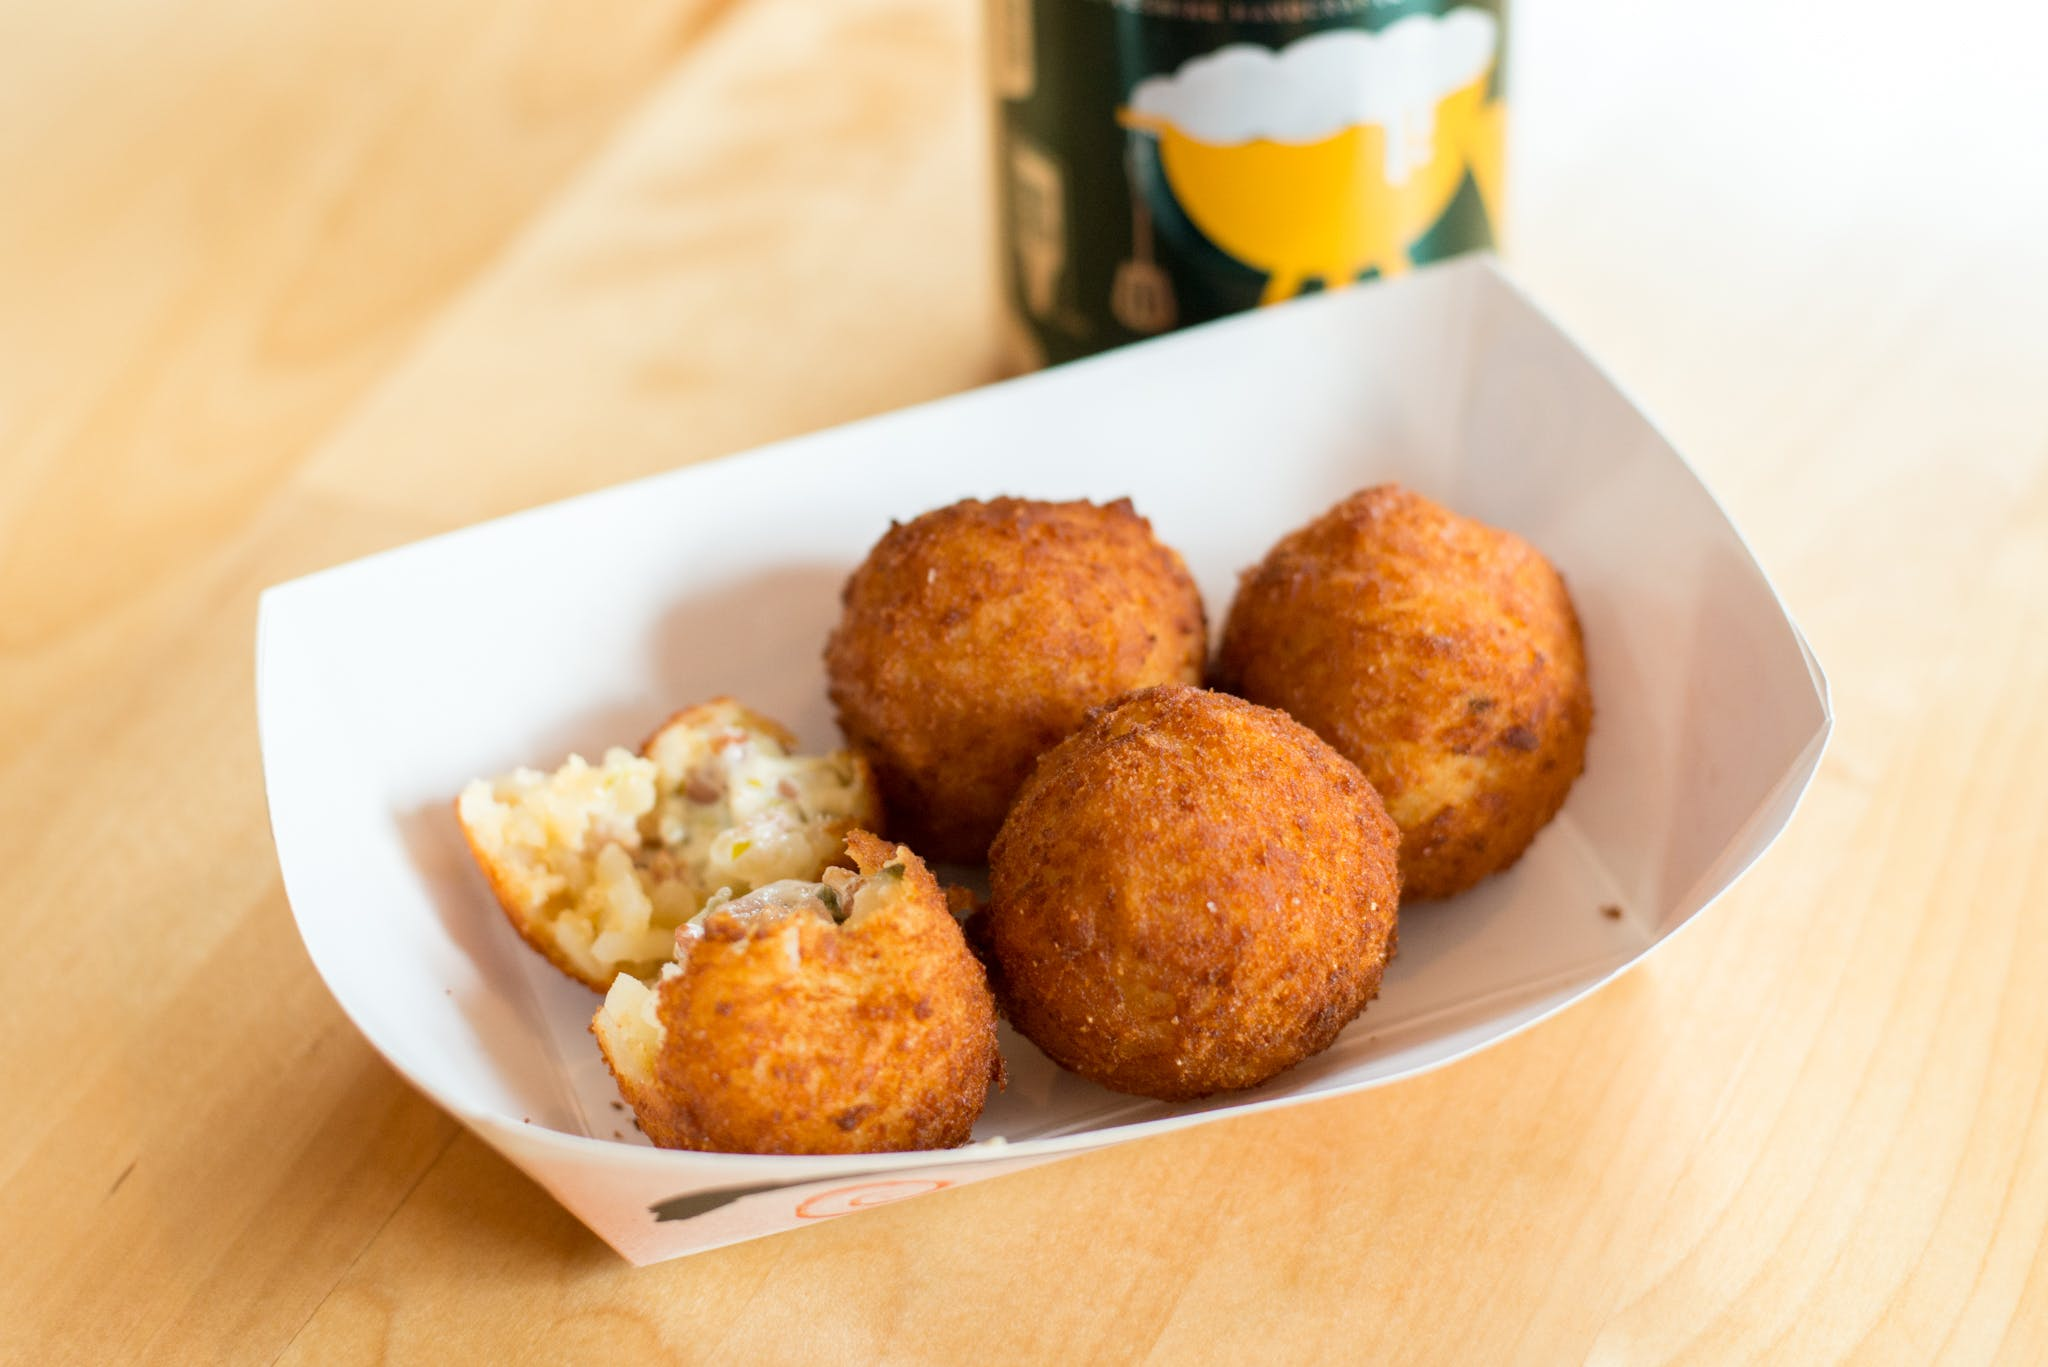 Poppers Homemade Tots from The Booyah Shed in Green Bay, WI